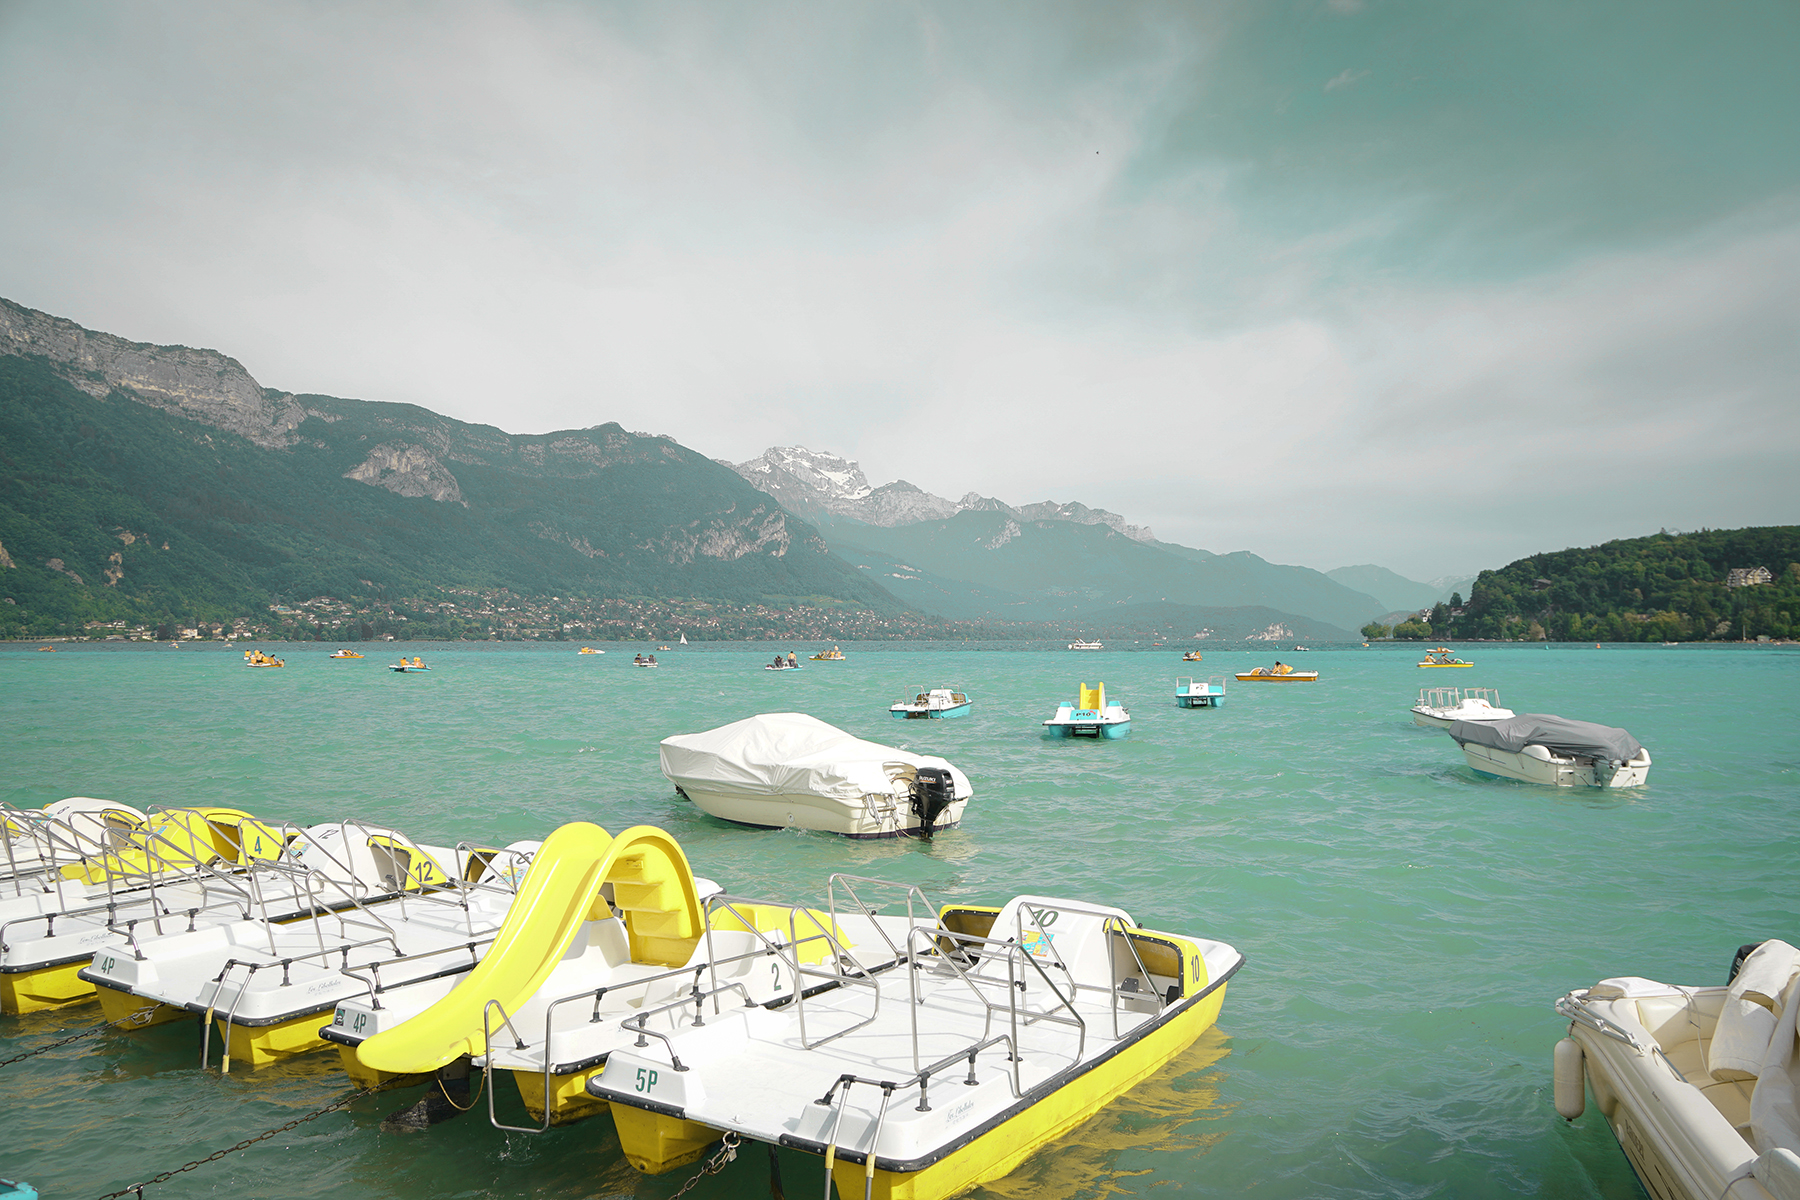 Lac d' Annecy